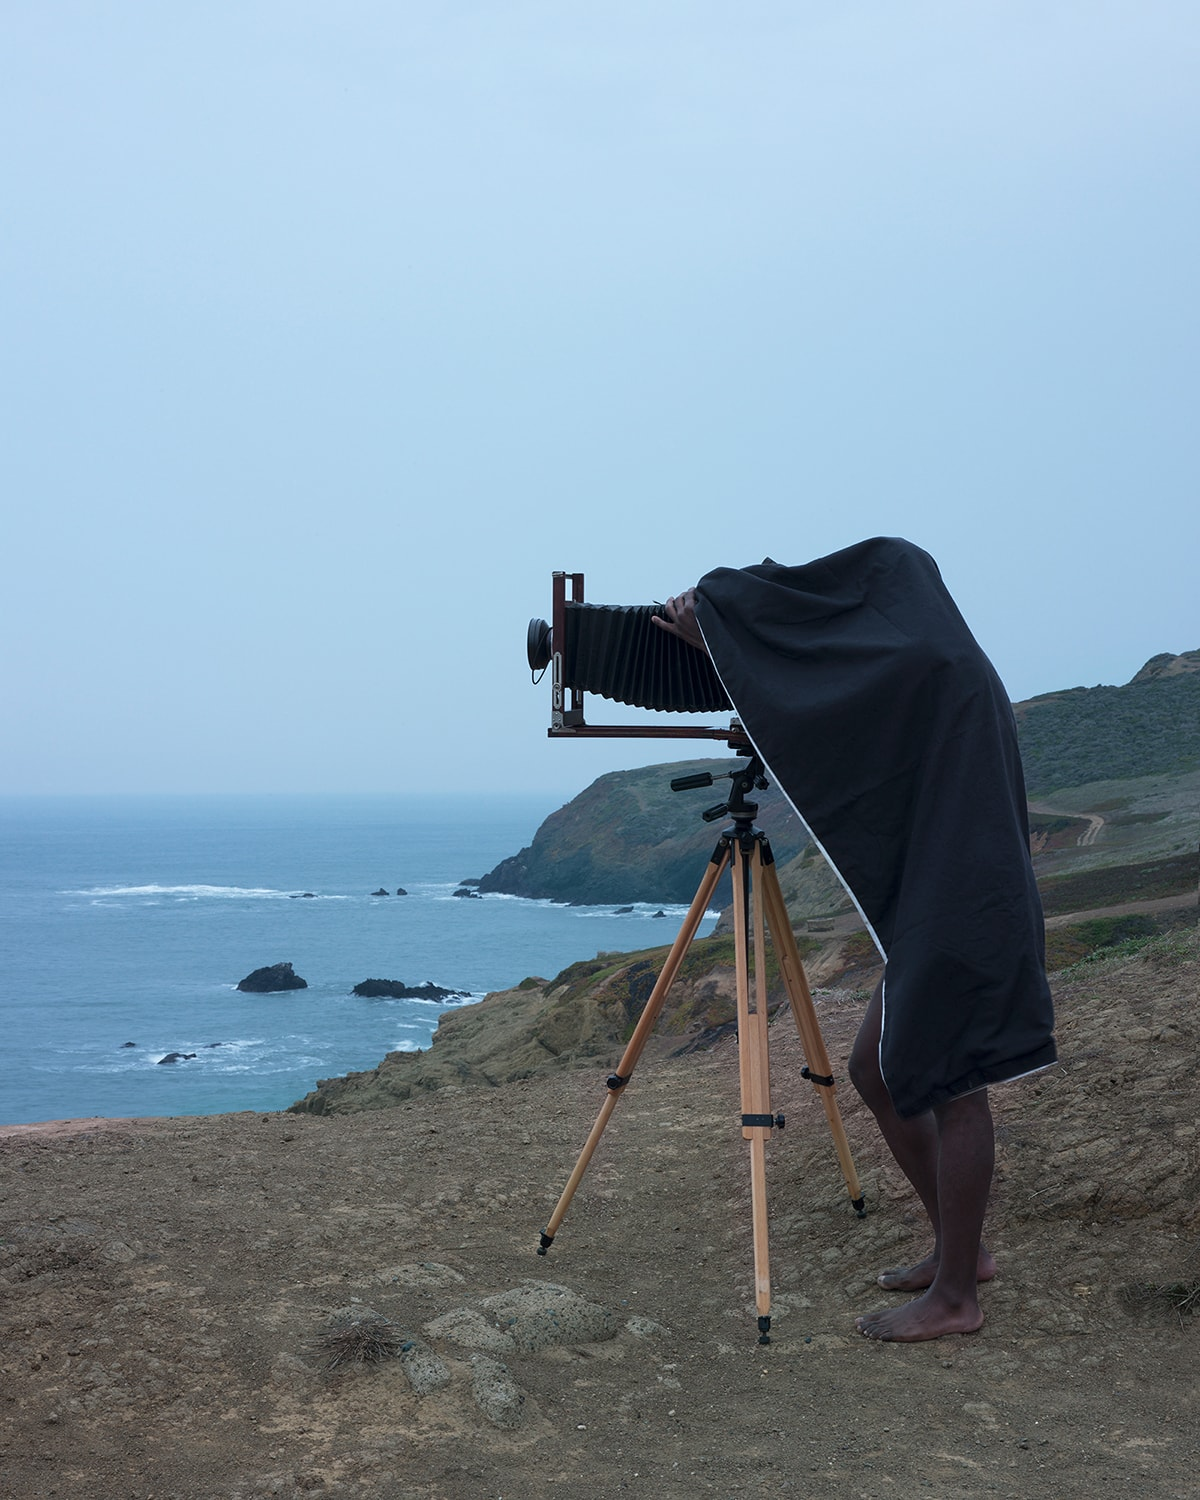 Double Vision, Jonathan Calm, pigment print. A vertical rectangular photograph of man using a camera on a tripod near an oceanside cliff. The man is seen from the side, his camera pointed to the left. The camera has a large black bellows attached to a lens and stands on light colored wooden tripod legs. The man is mostly concealed under a dark cloth with only his bare legs and the fingers of one hand visible. He is dark skinned and barefoot. He stands on rough, brown ground with cliffs and the ocean behind his. The upper half of the photo contains a pale blue sky.